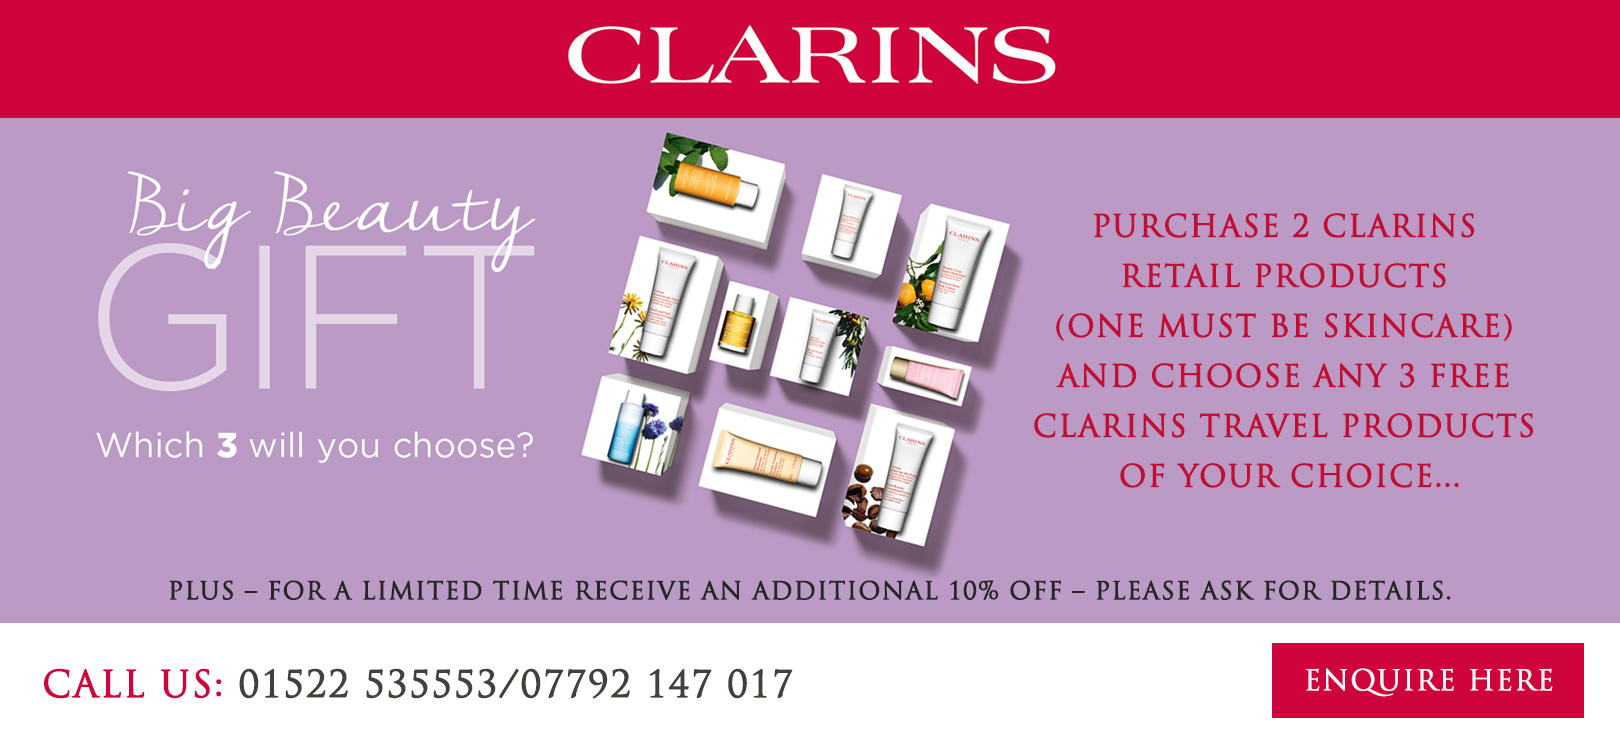 clarins-big-beauty-gift-promo